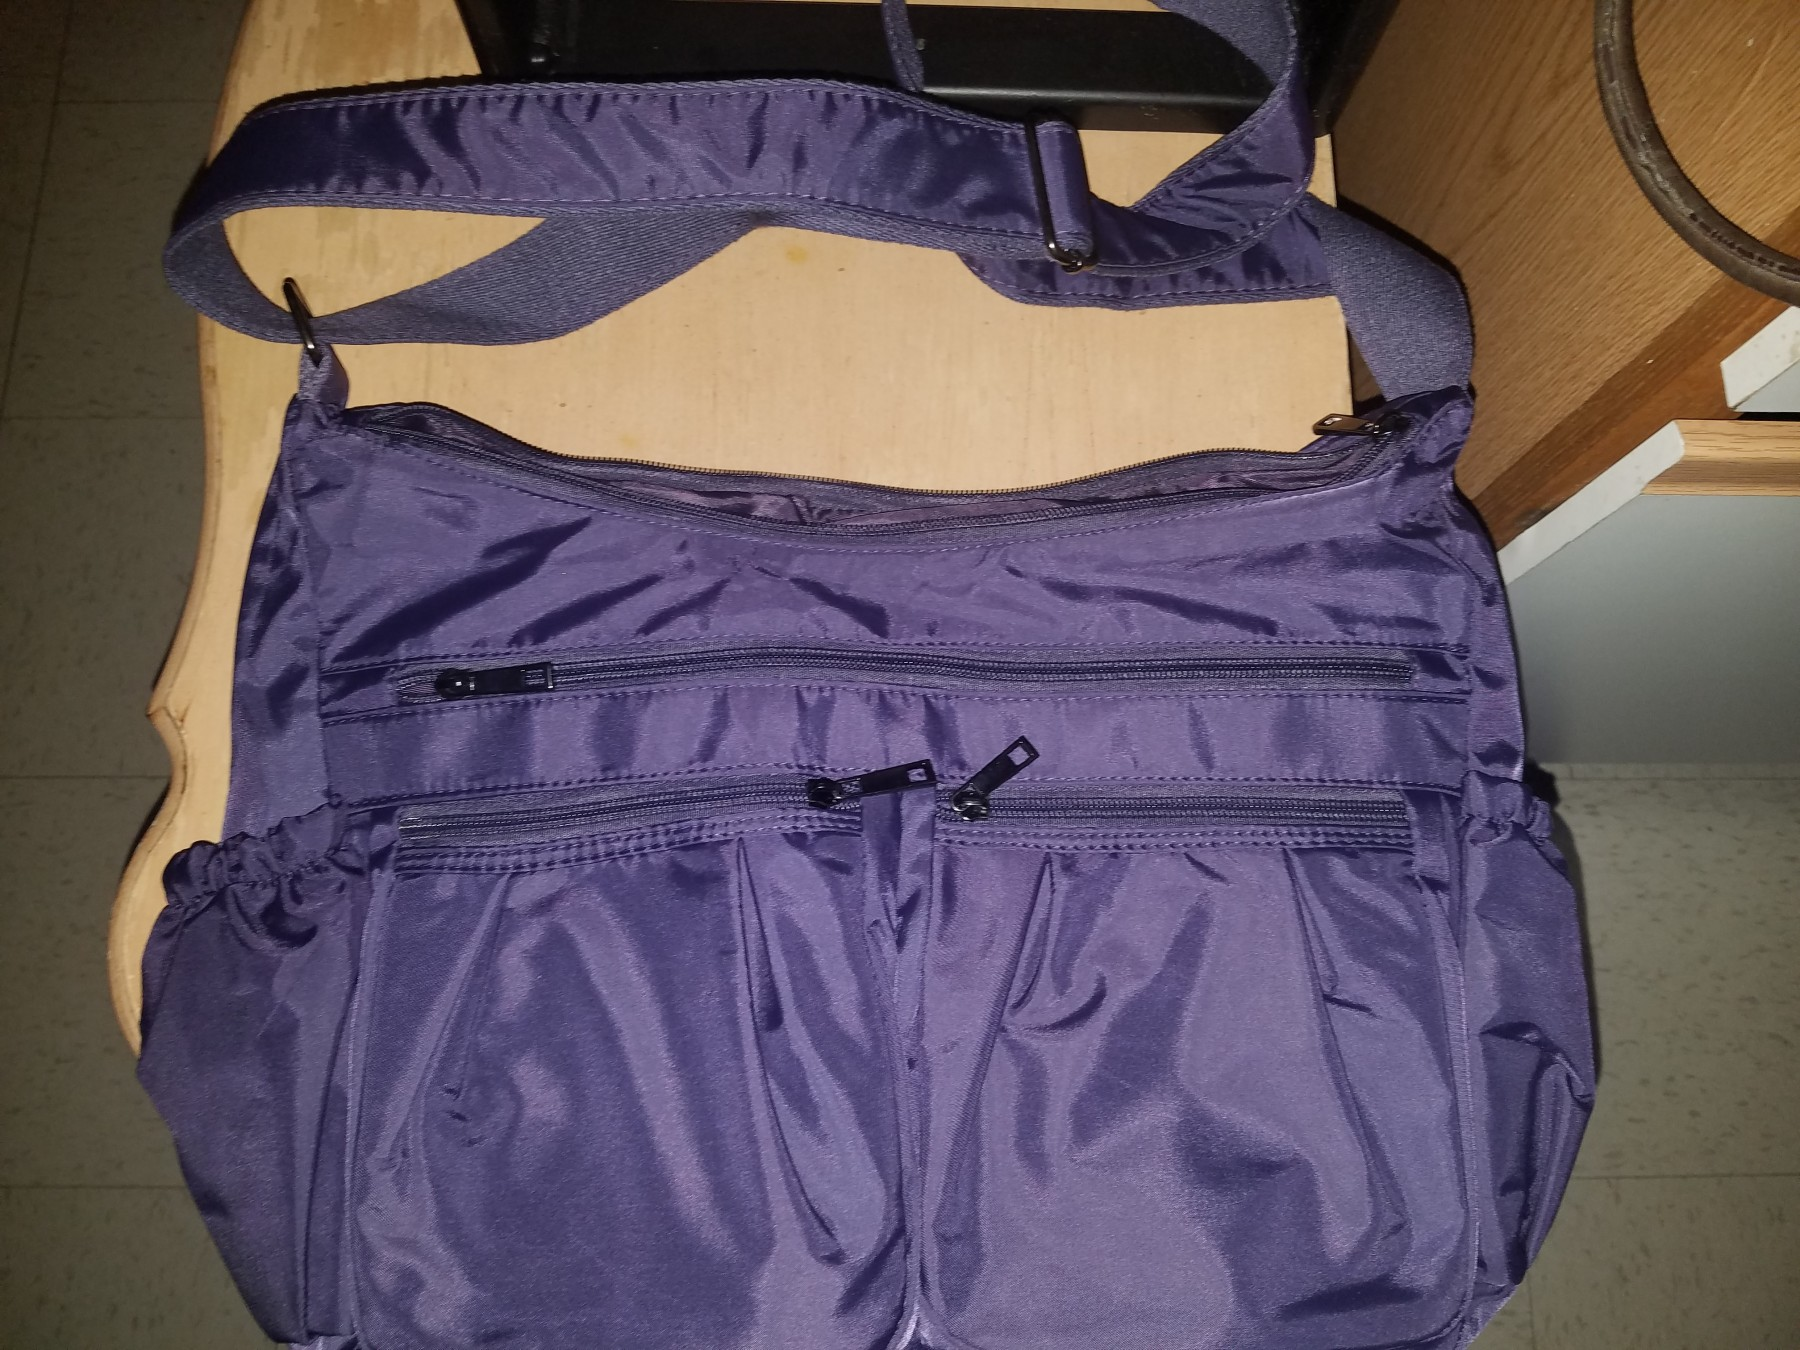 Great quality, roomy purse w/ adjustable strap!